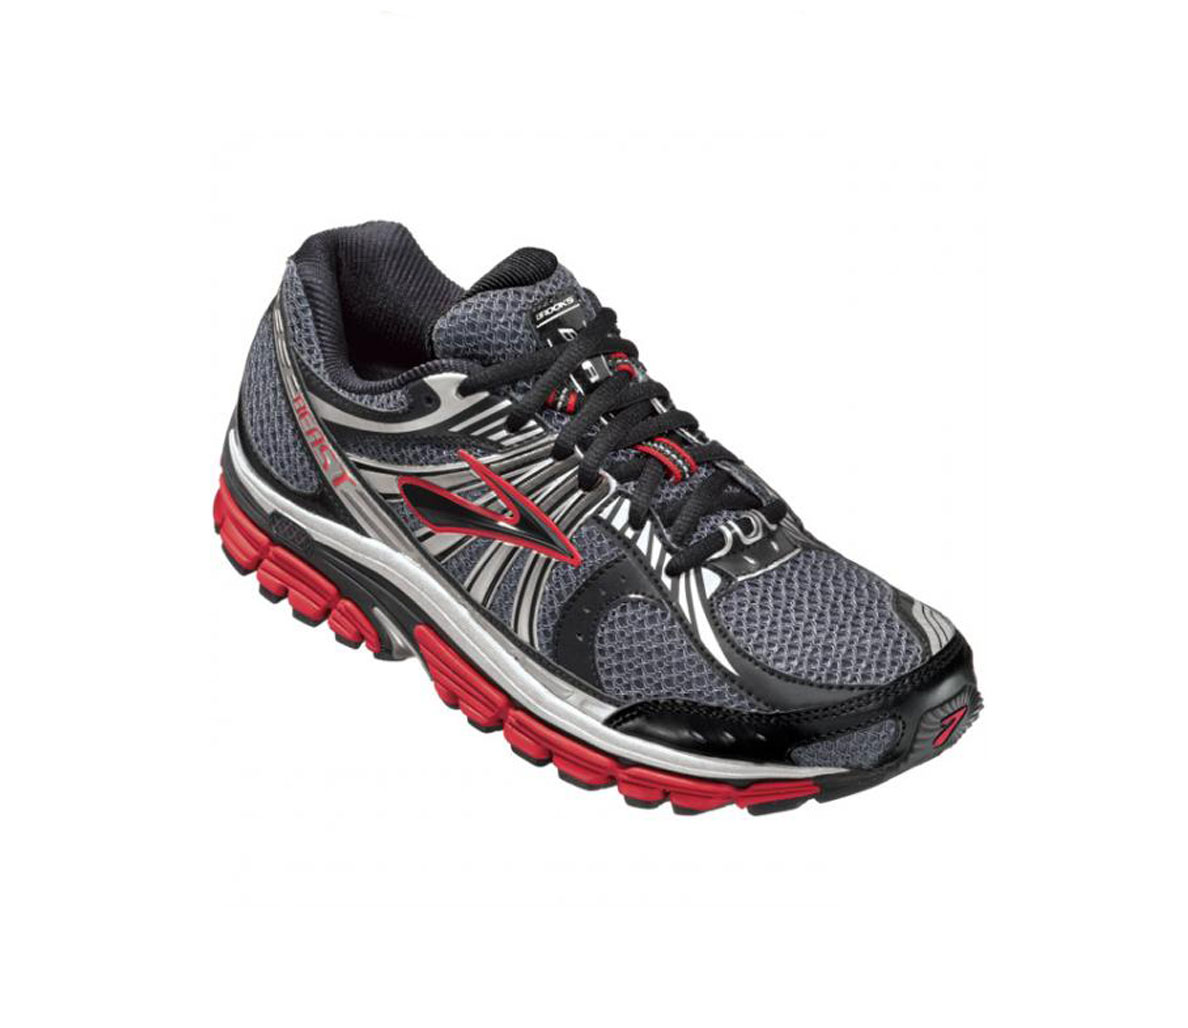 b1904e211ee 10 Best Running Shoes for Guys With Problem Feet - Men s Journal